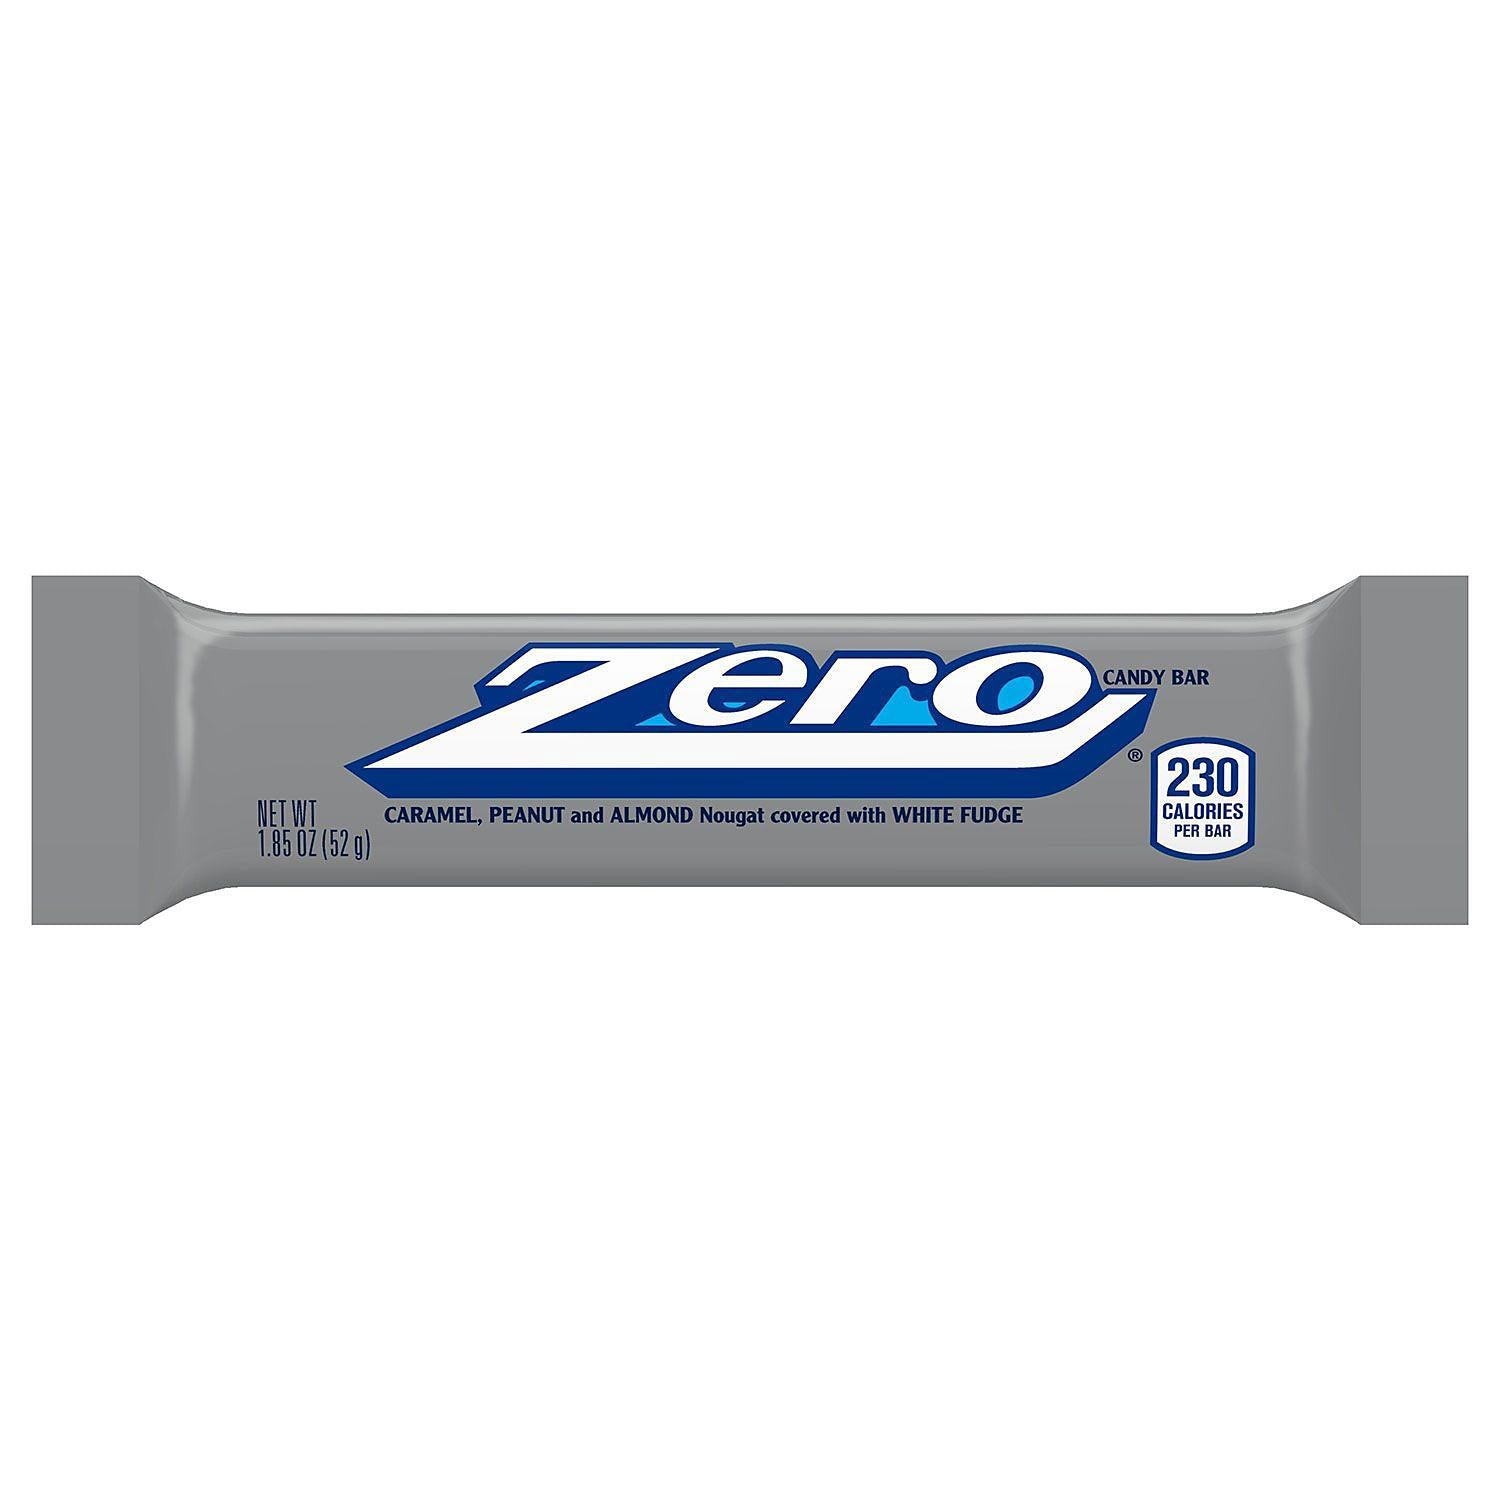 Zero Candy Bars, 1.85oz Bars, 24 pk, Net Wt 2lb 12.4oz